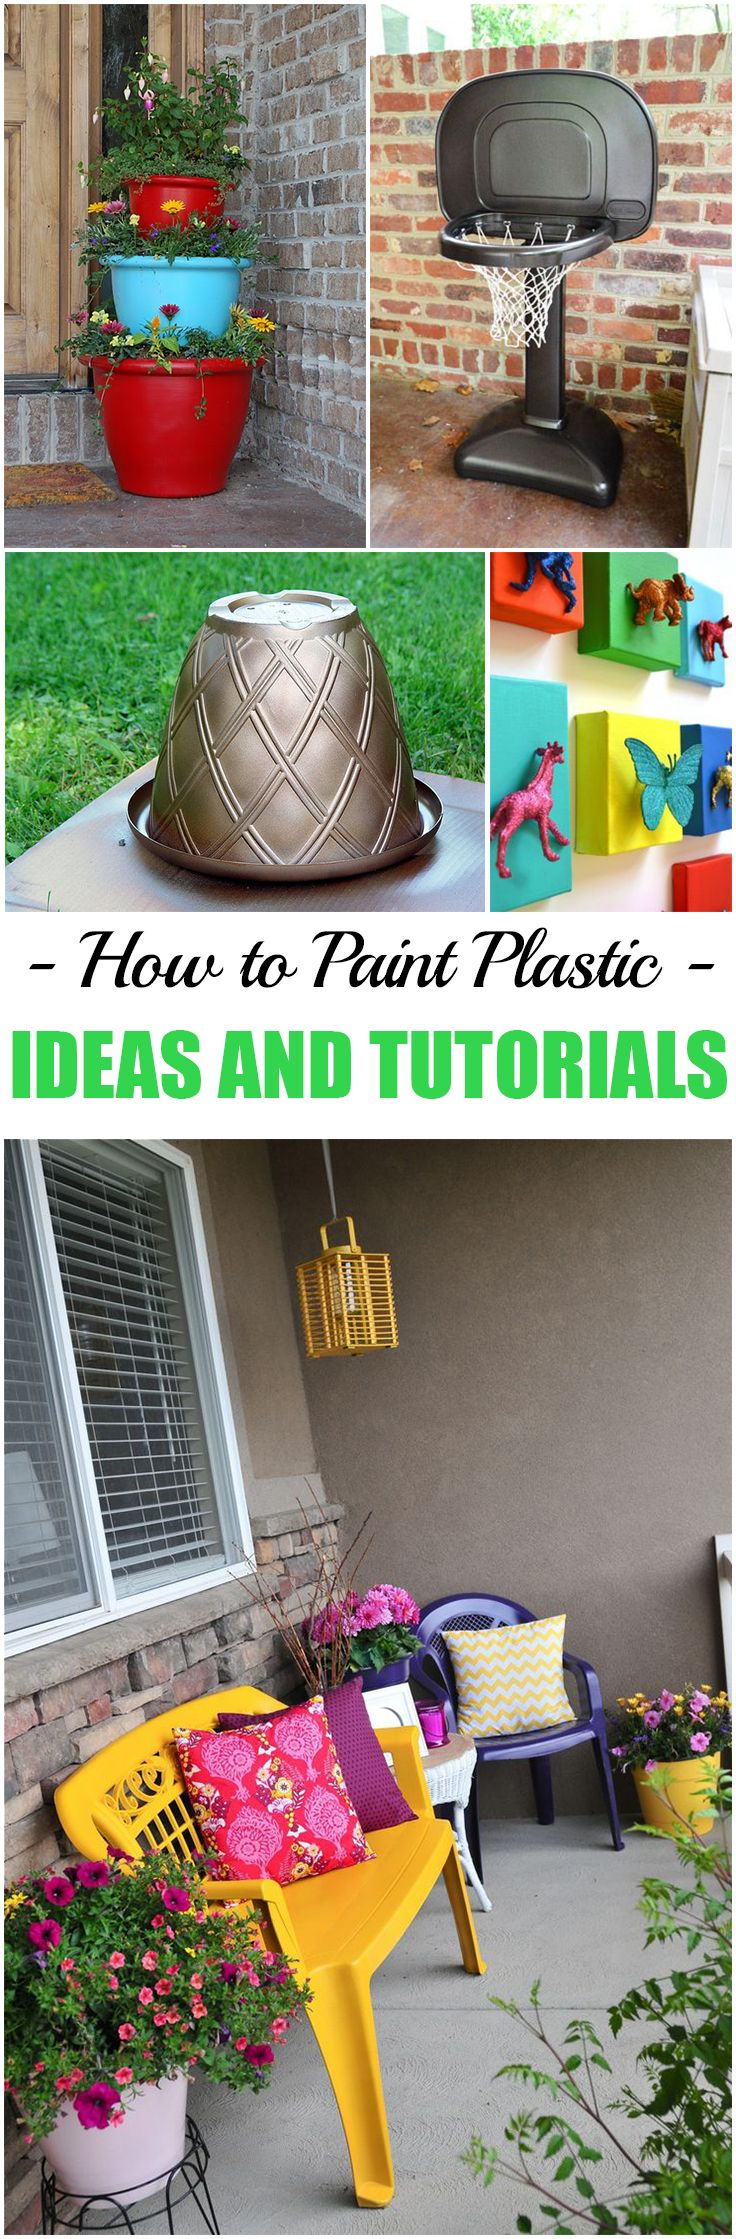 How to Paint Plastic. Fun ideas and tutorials for painting old furniture, plastic toys and more!